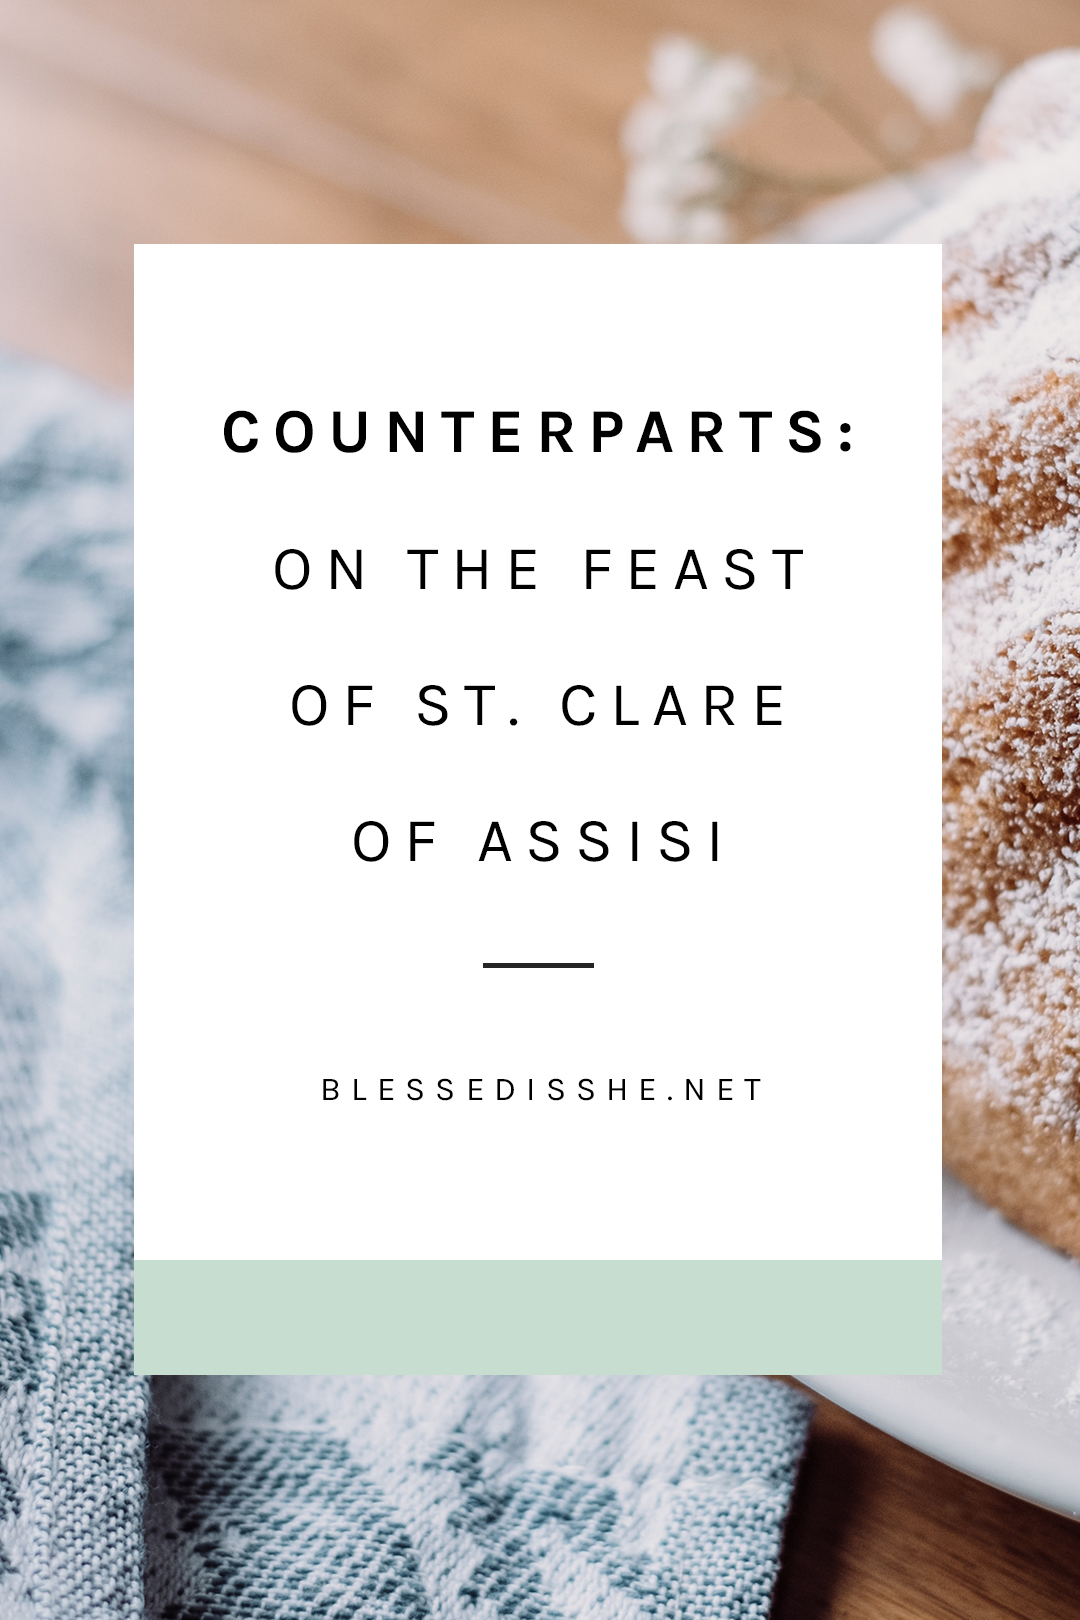 feast of st. clare of assisi